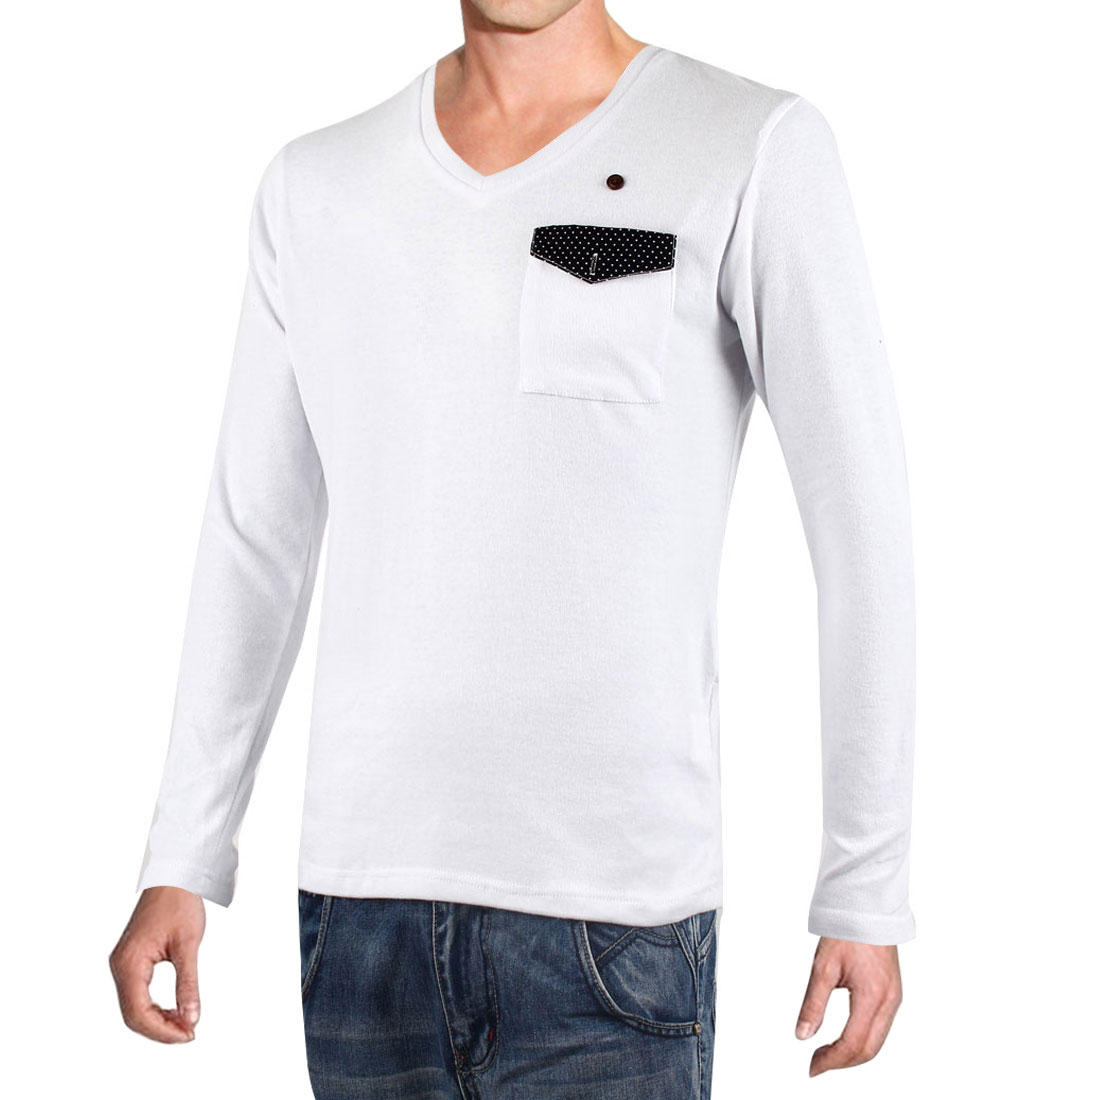 Men White V Neck Long Sleeve Dots Detail Pocket Top Casual Shirt M